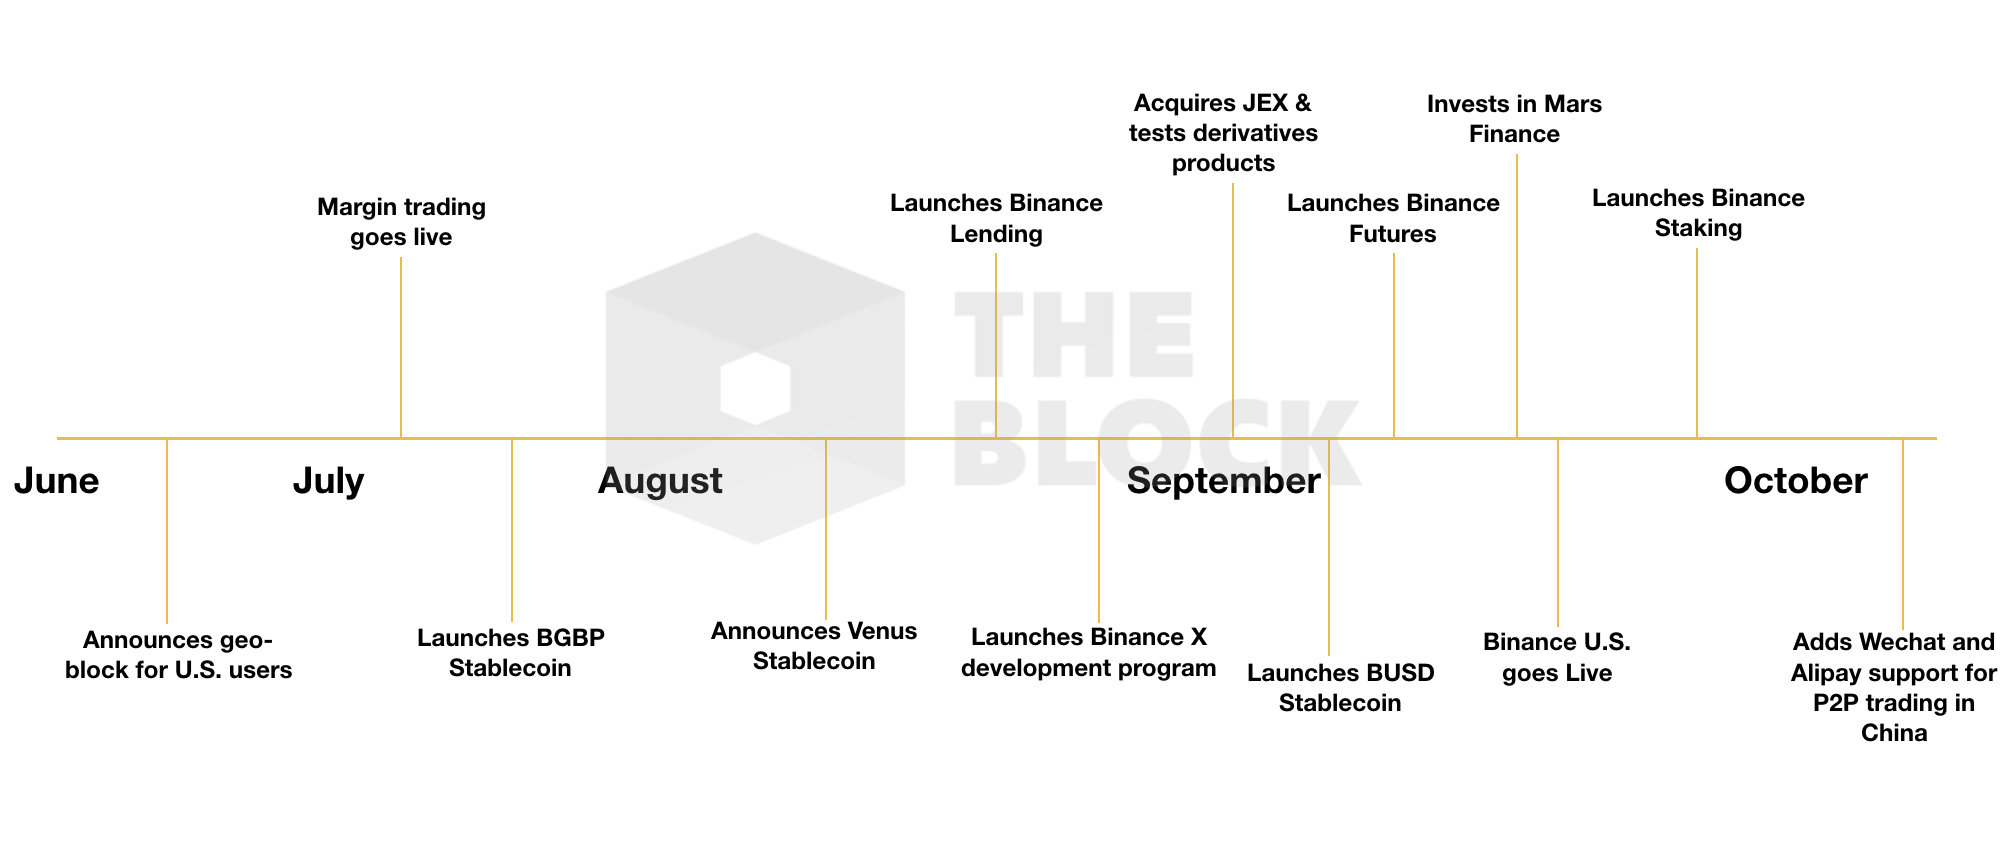 Behind Binance's 20+ news announcements in H2 2019, its ambition to retract lost markets and snatch a new one